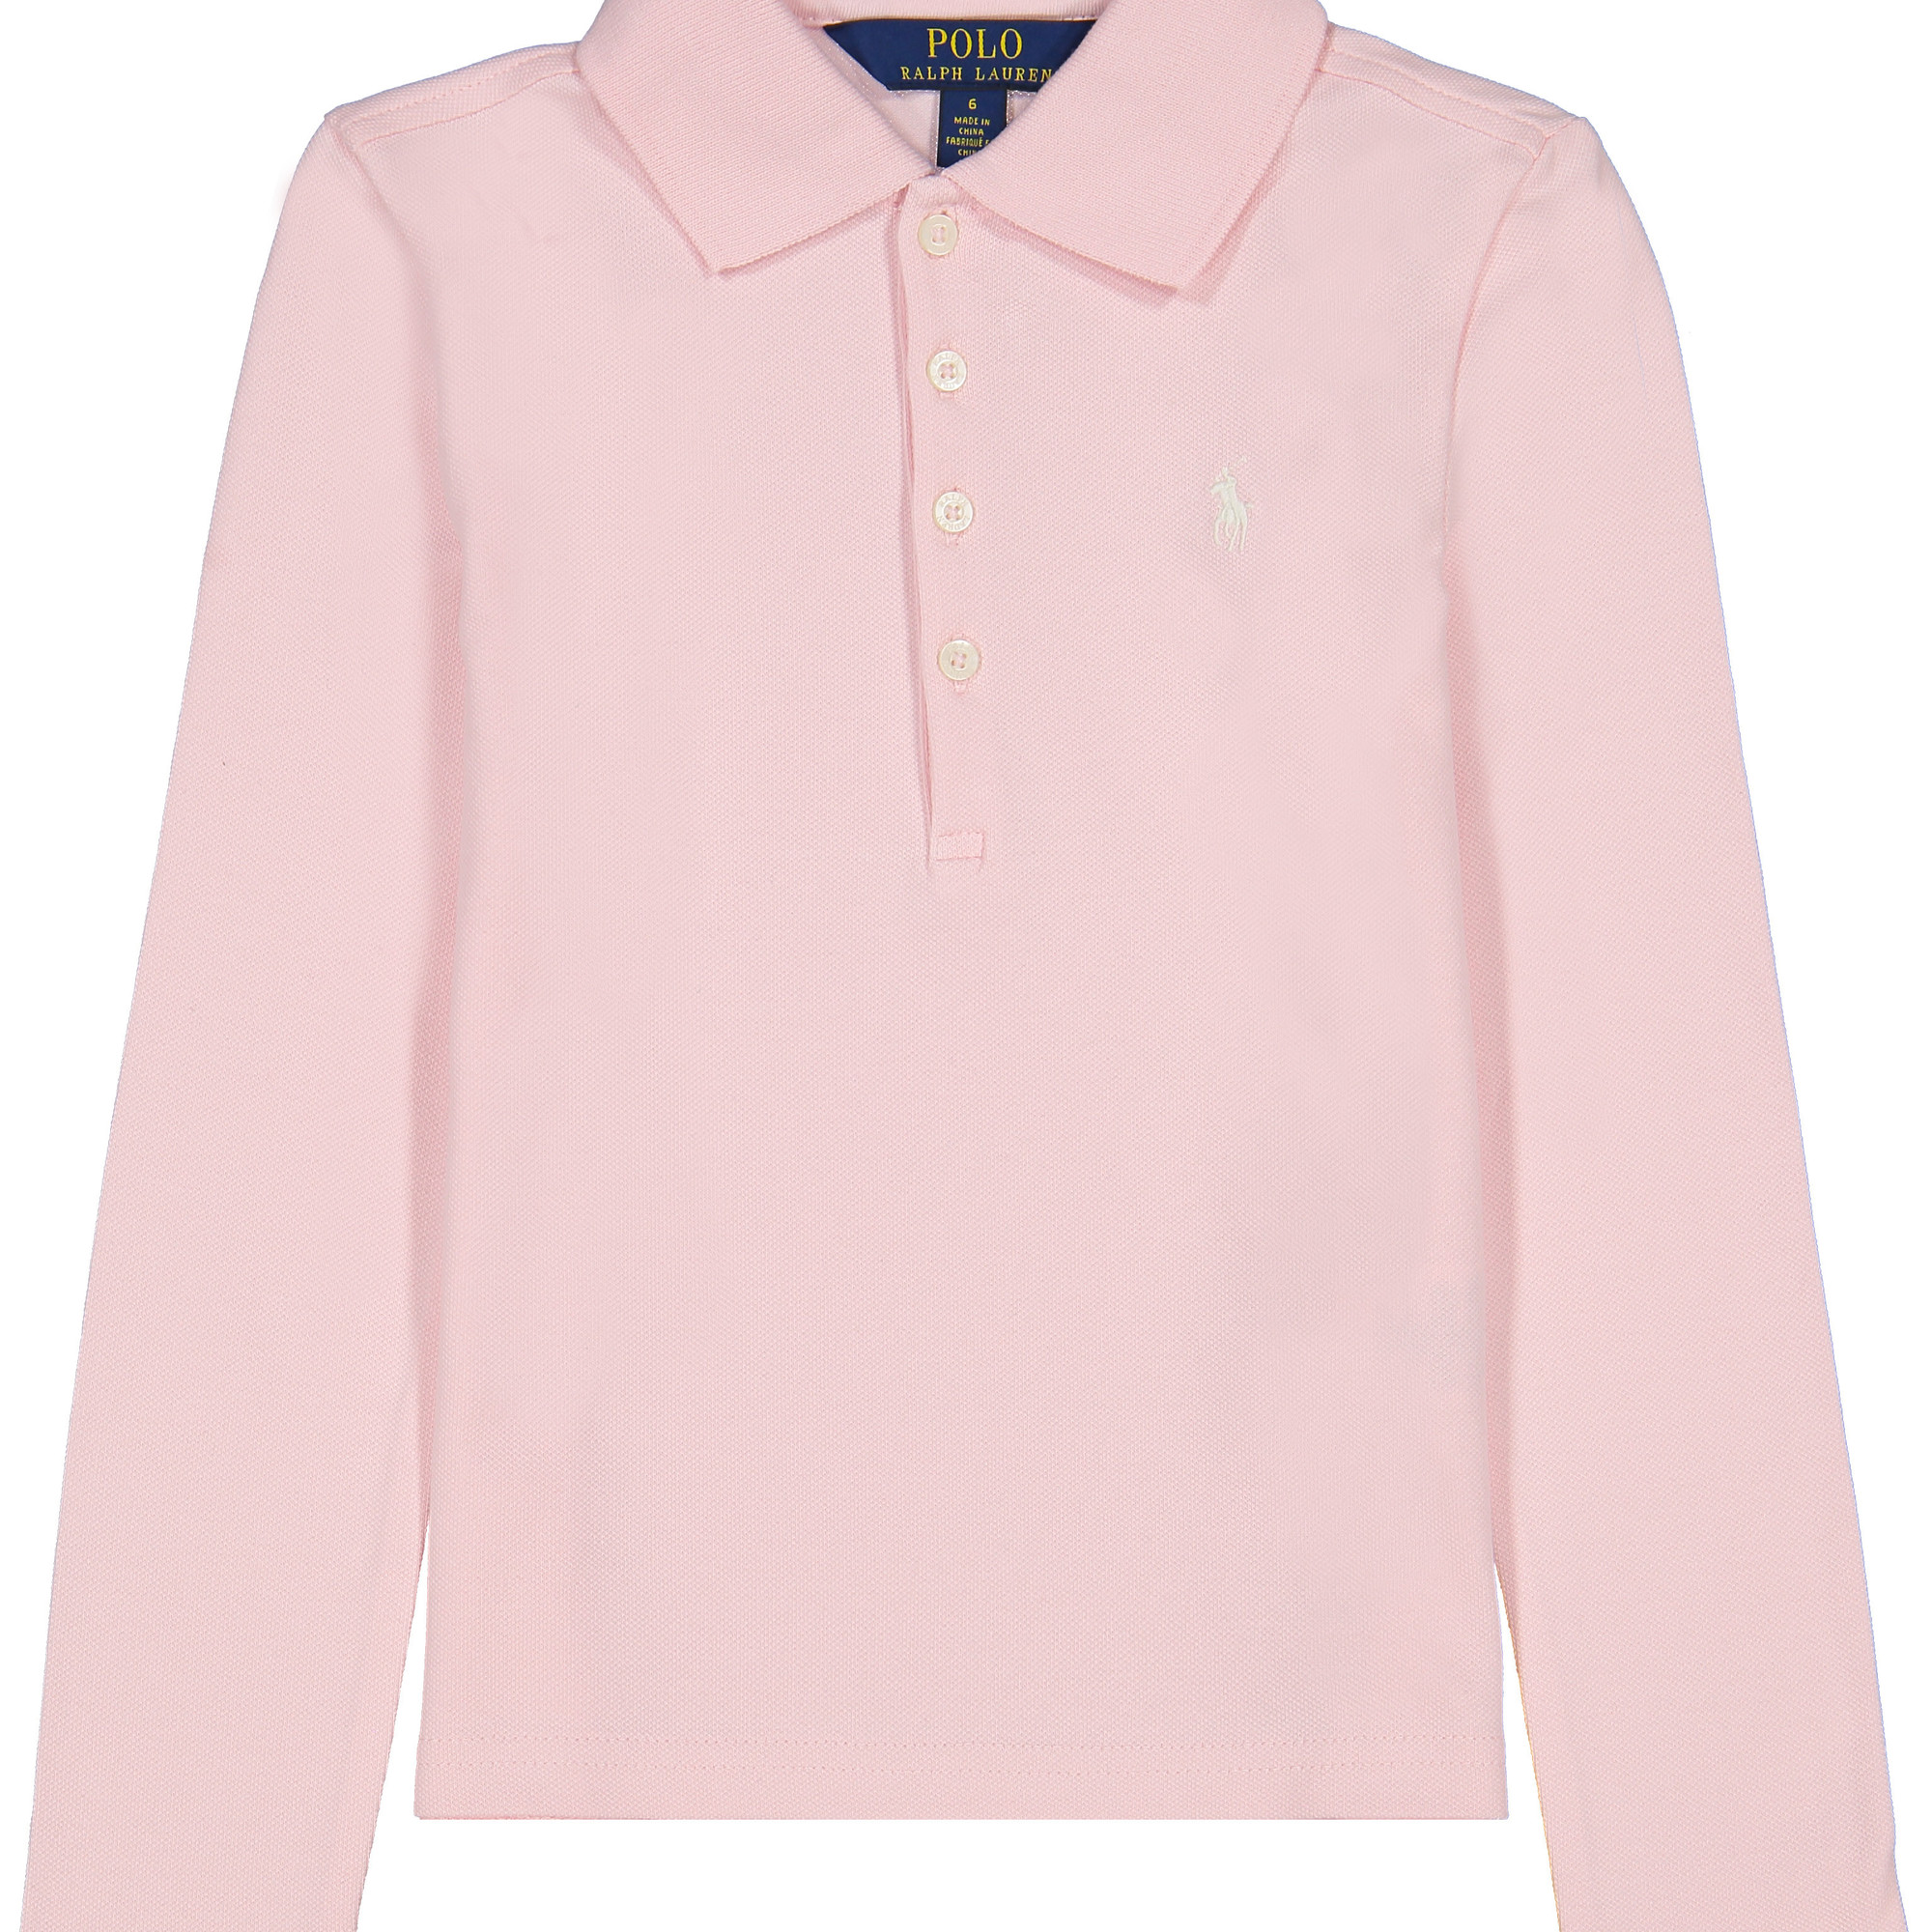 Girls Long Sleeve Polo Shirt in Pink